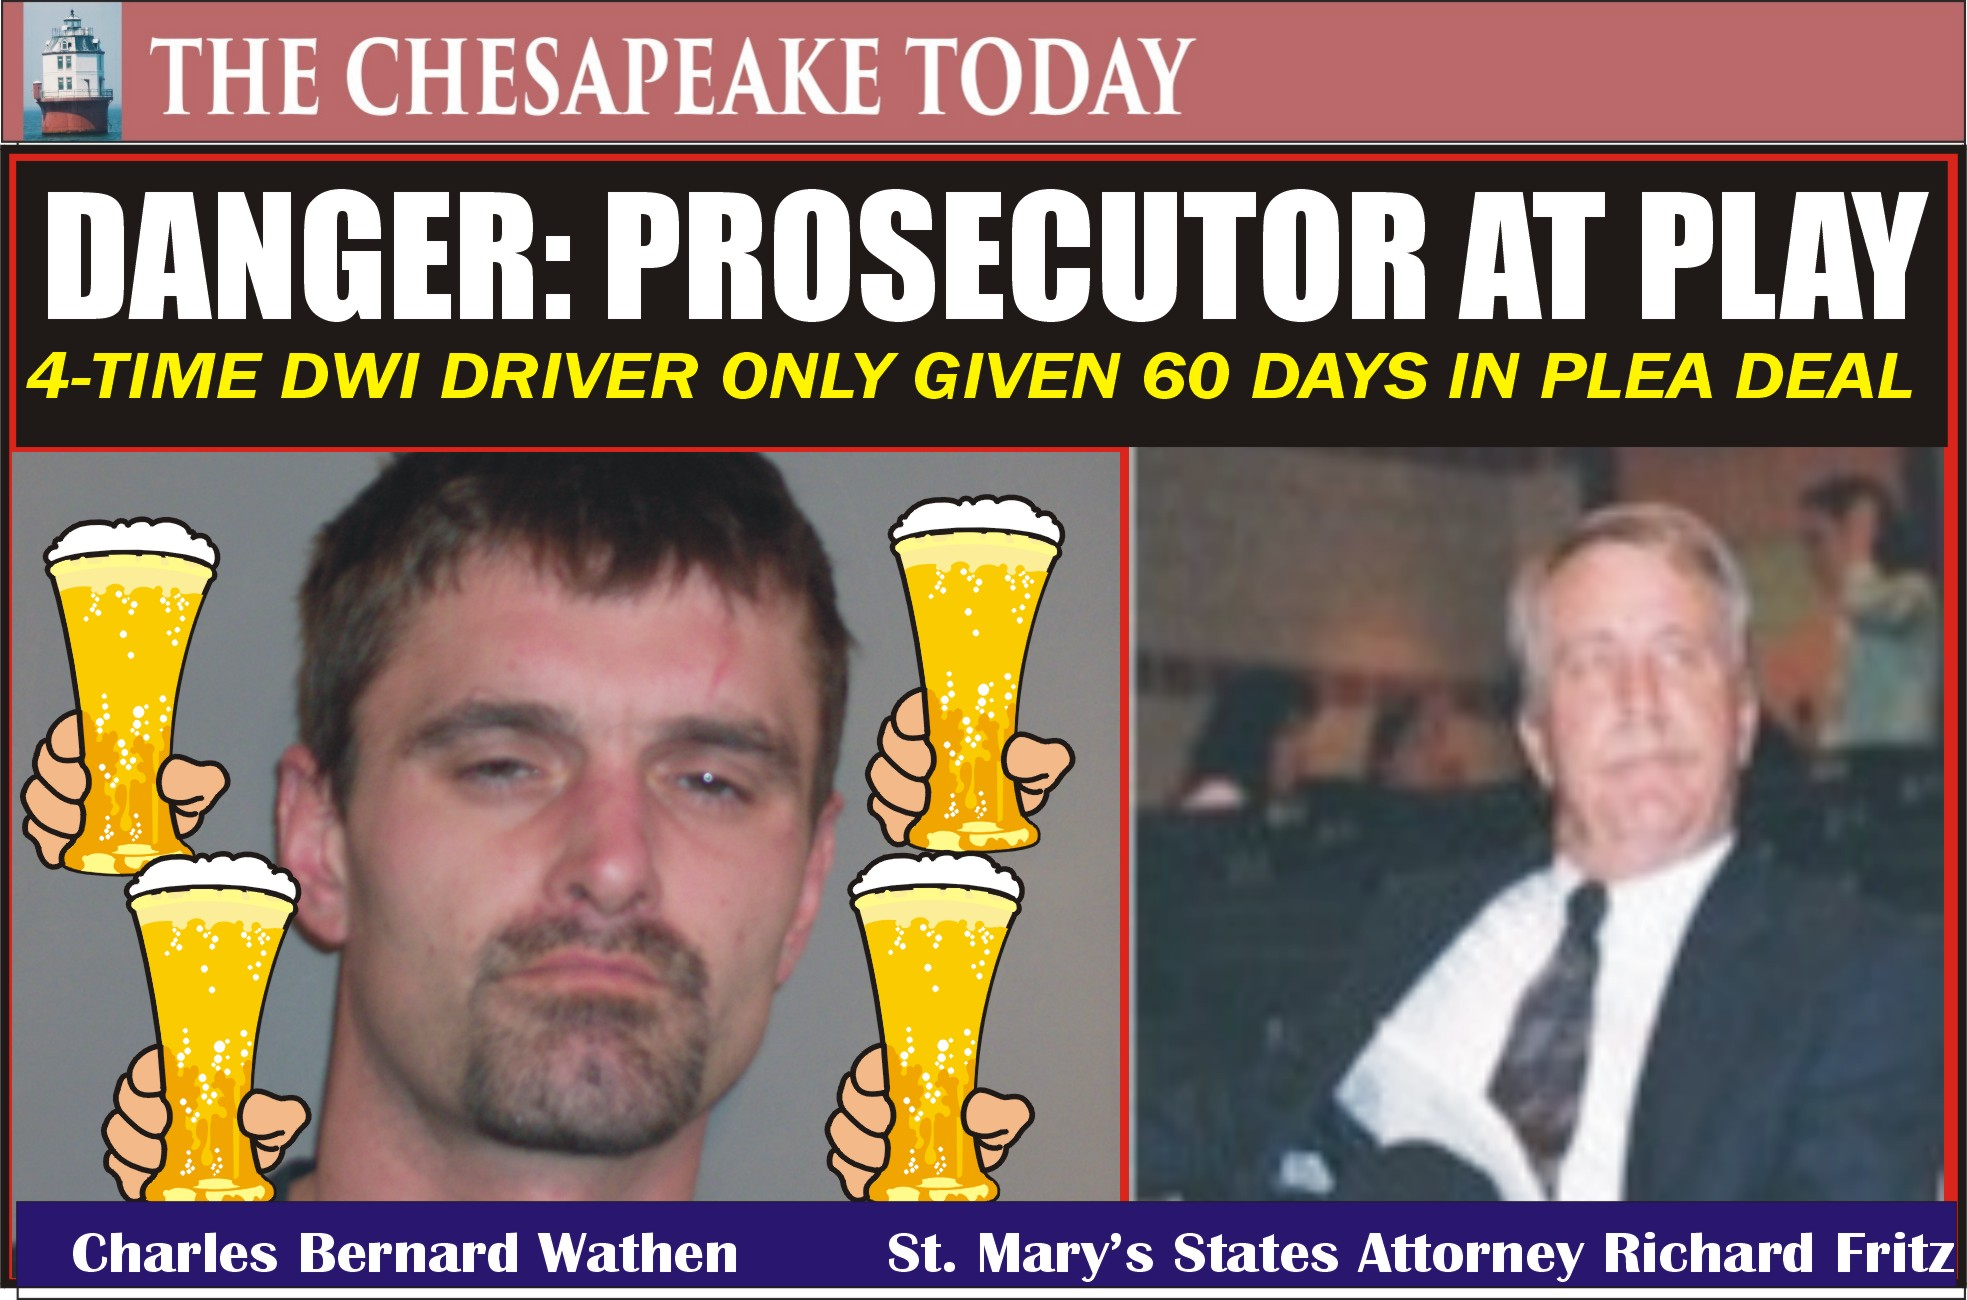 COURT NEWS: St. Mary's States Attorney Fritz permitted 4-time DUI offender to only be jailed for sixty days